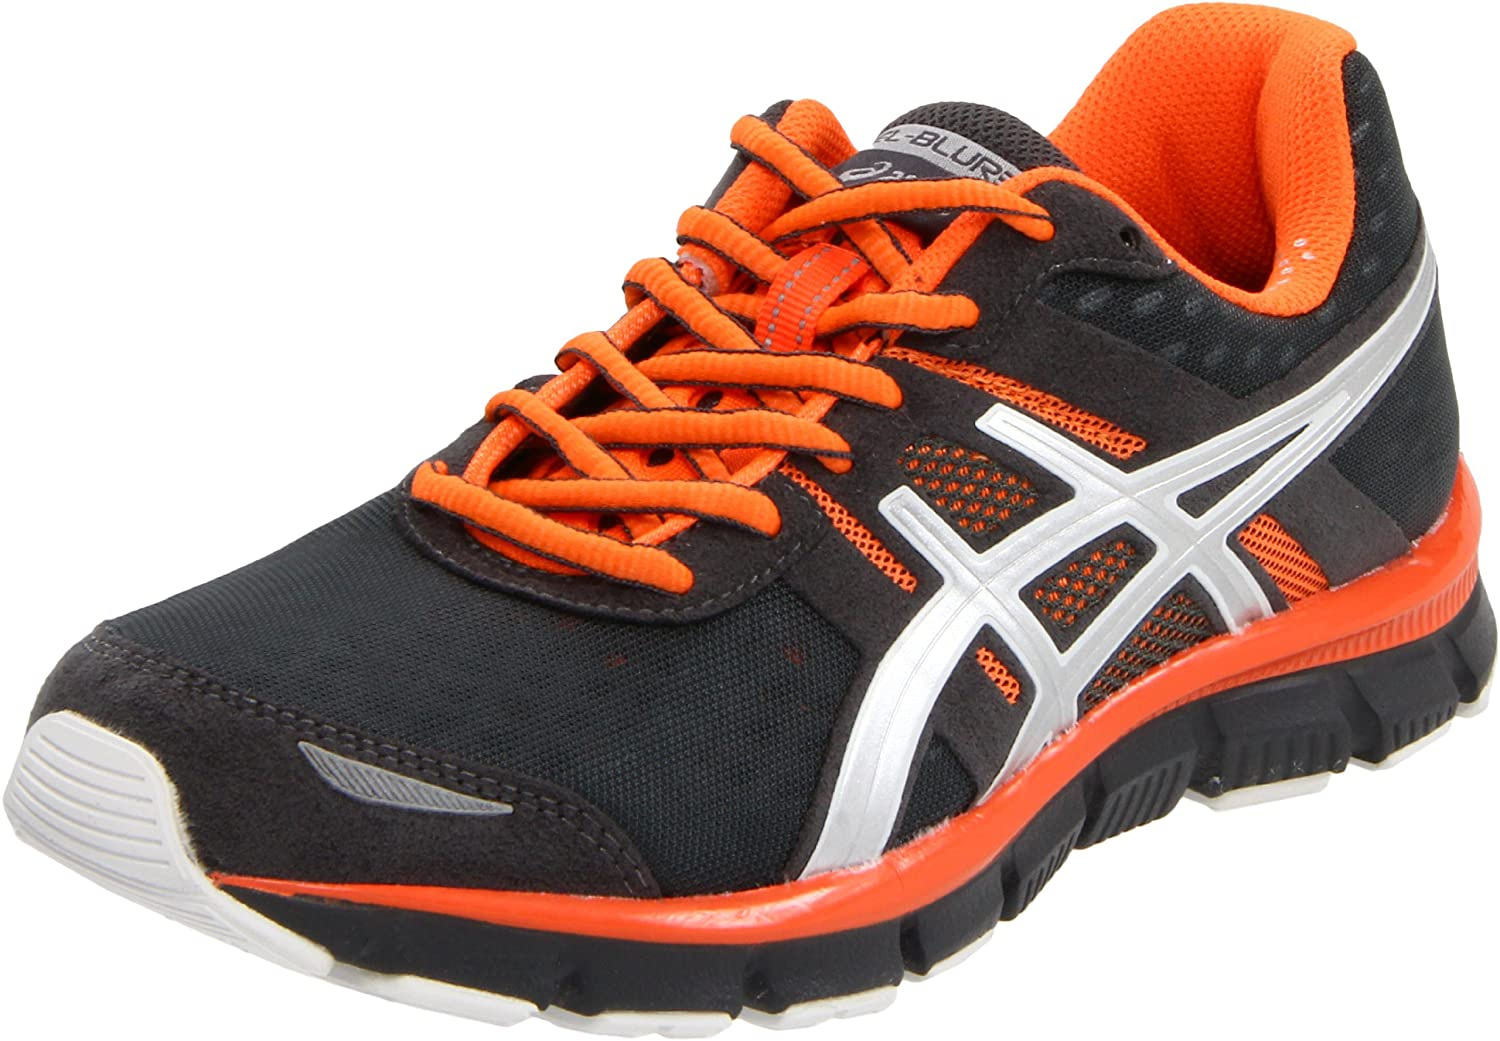 What Are The Top 10 Running Shoes 62